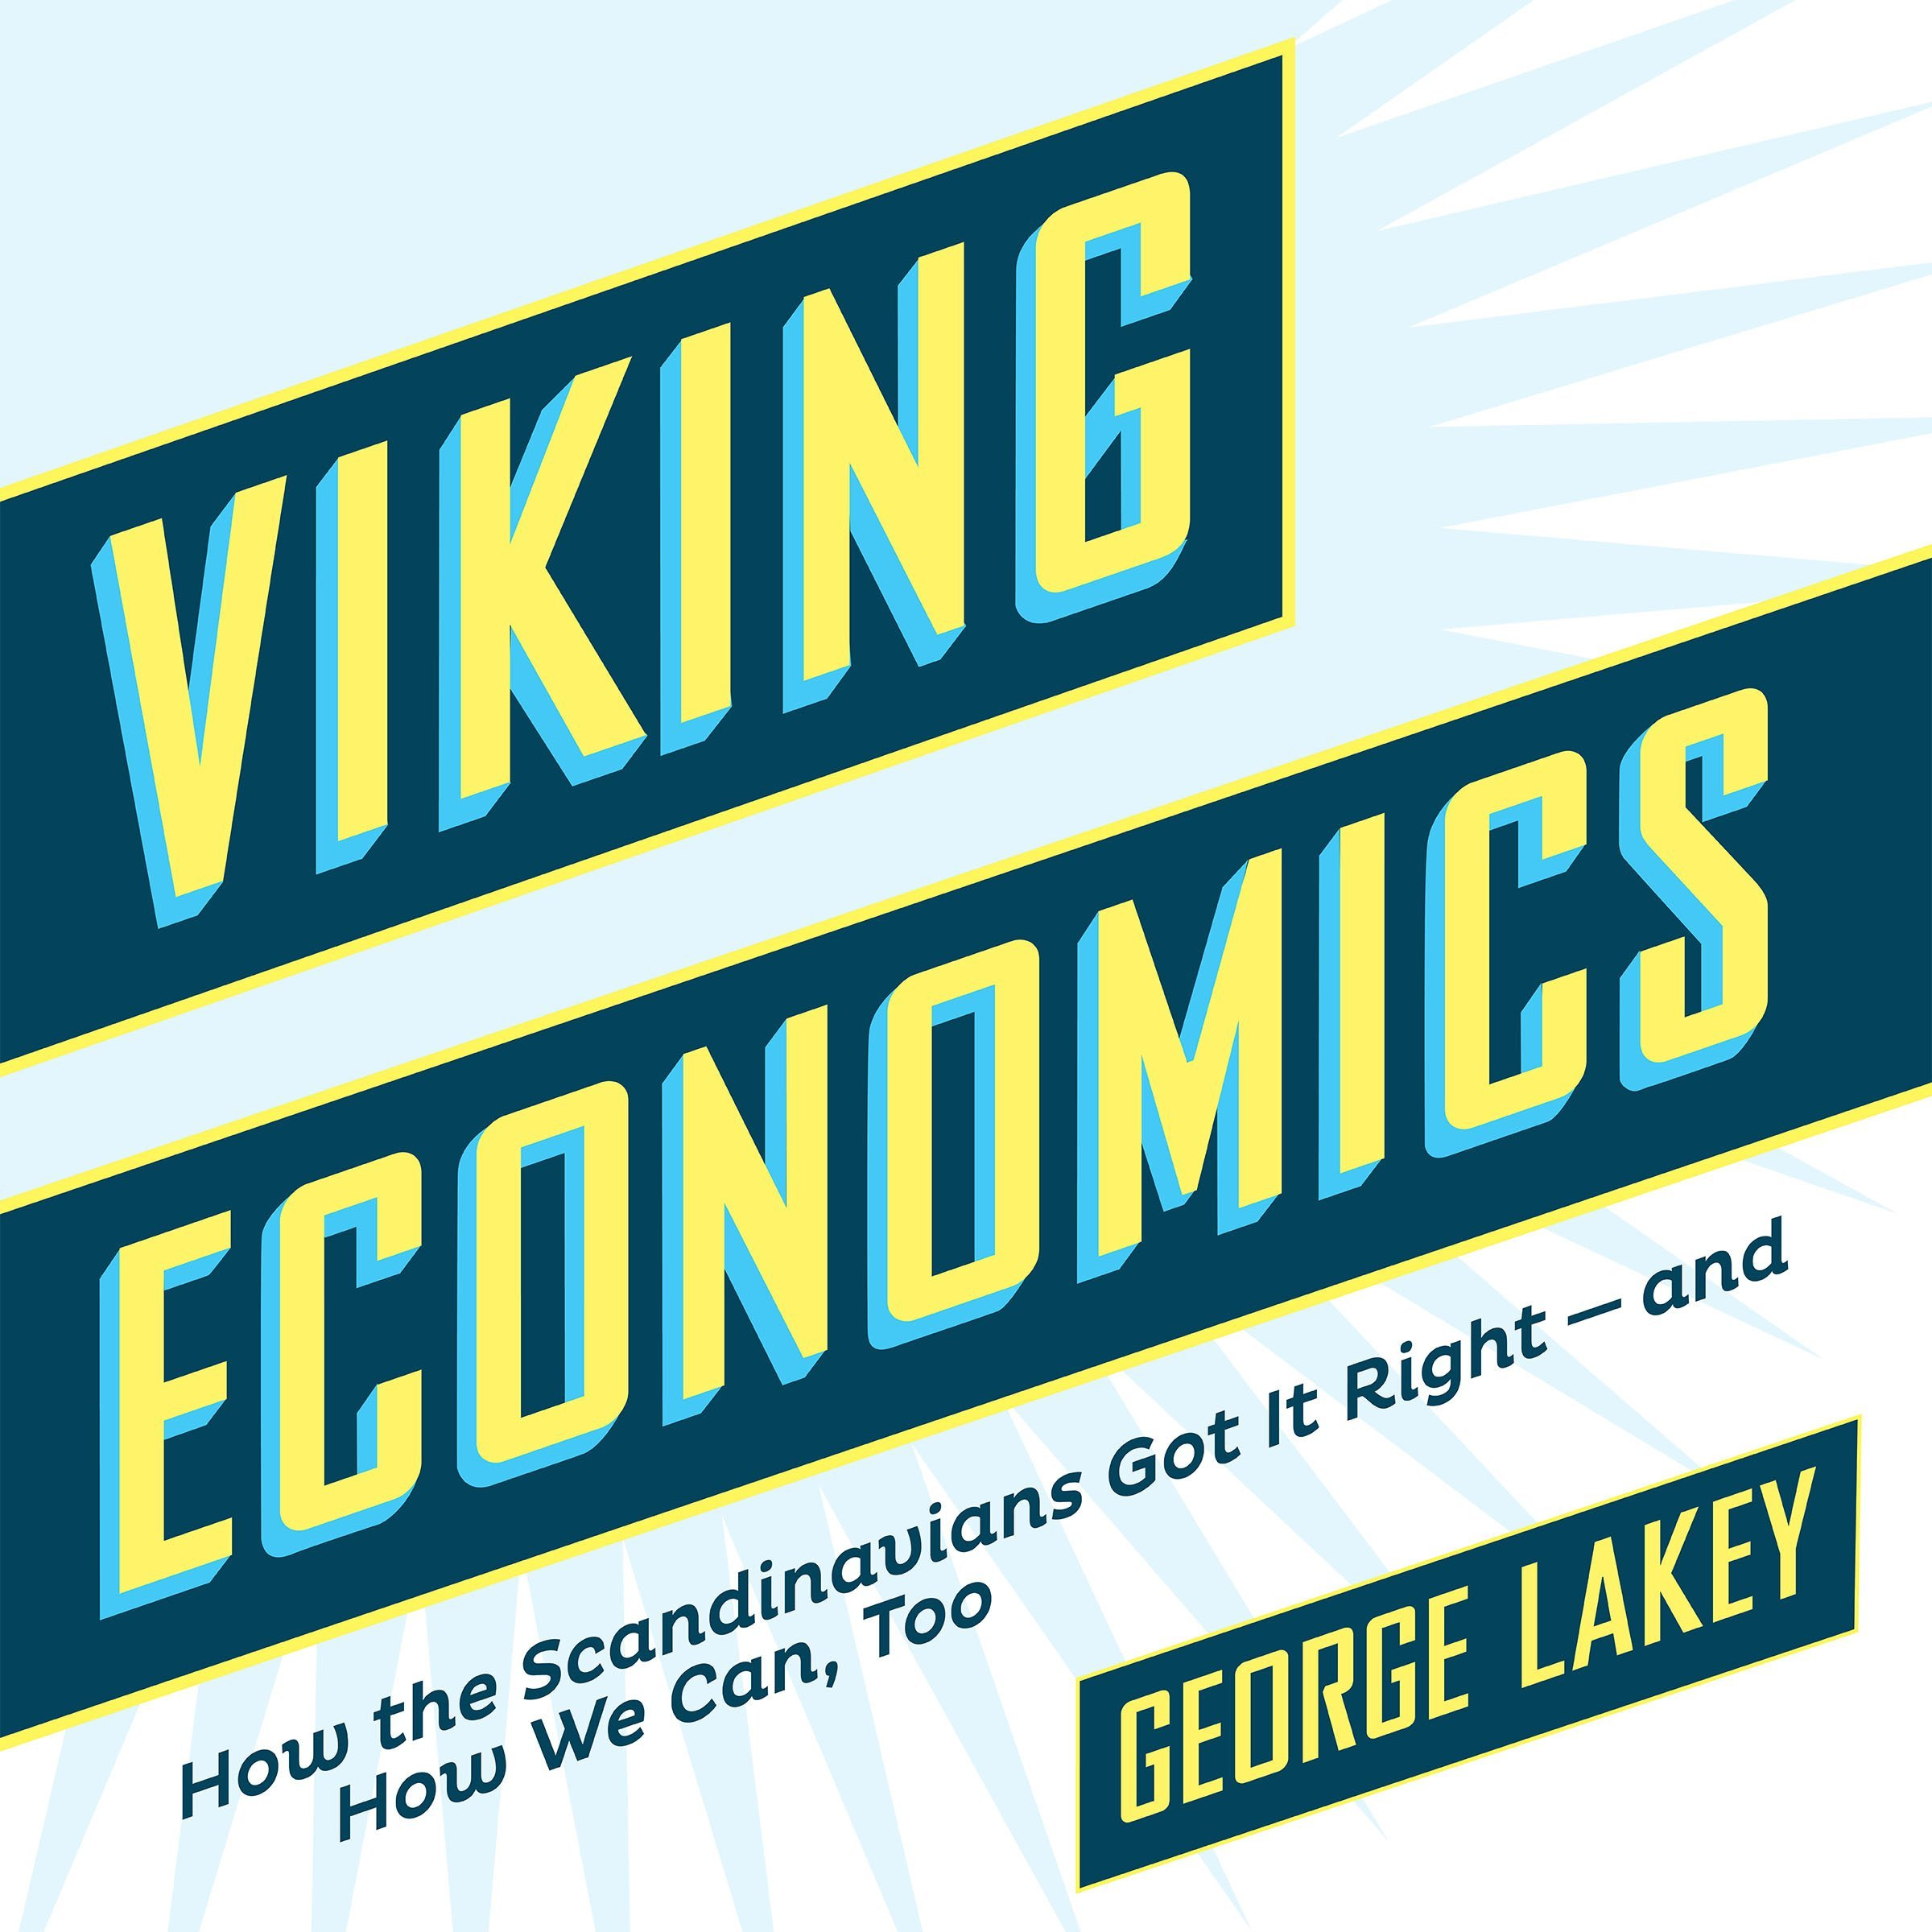 Viking Economics:: How the Scandinavians Got It Right - And How We Can, Too